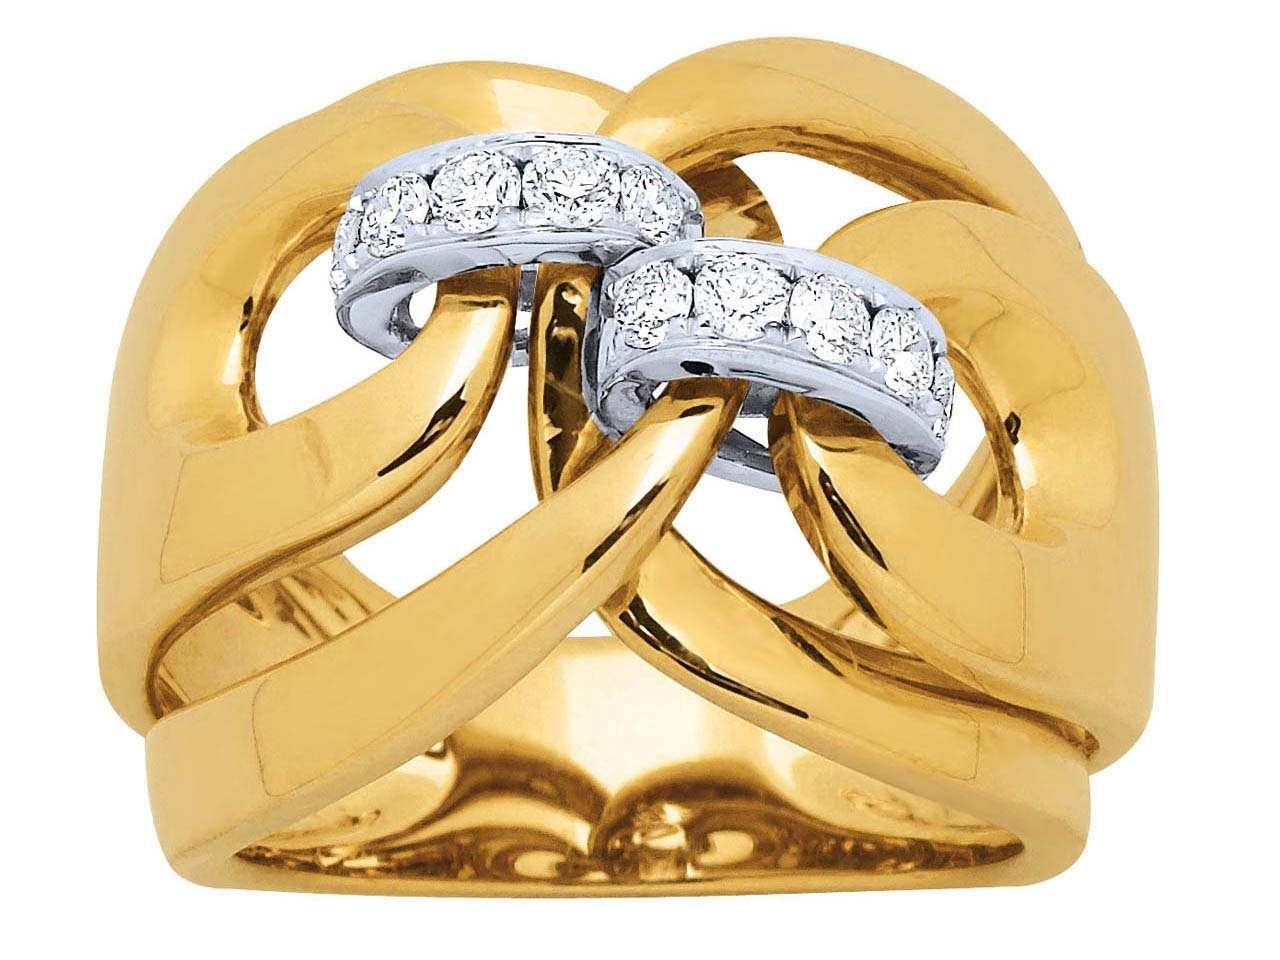 Bague liens Or jaune, diamants 0,43 ct, doigt 54